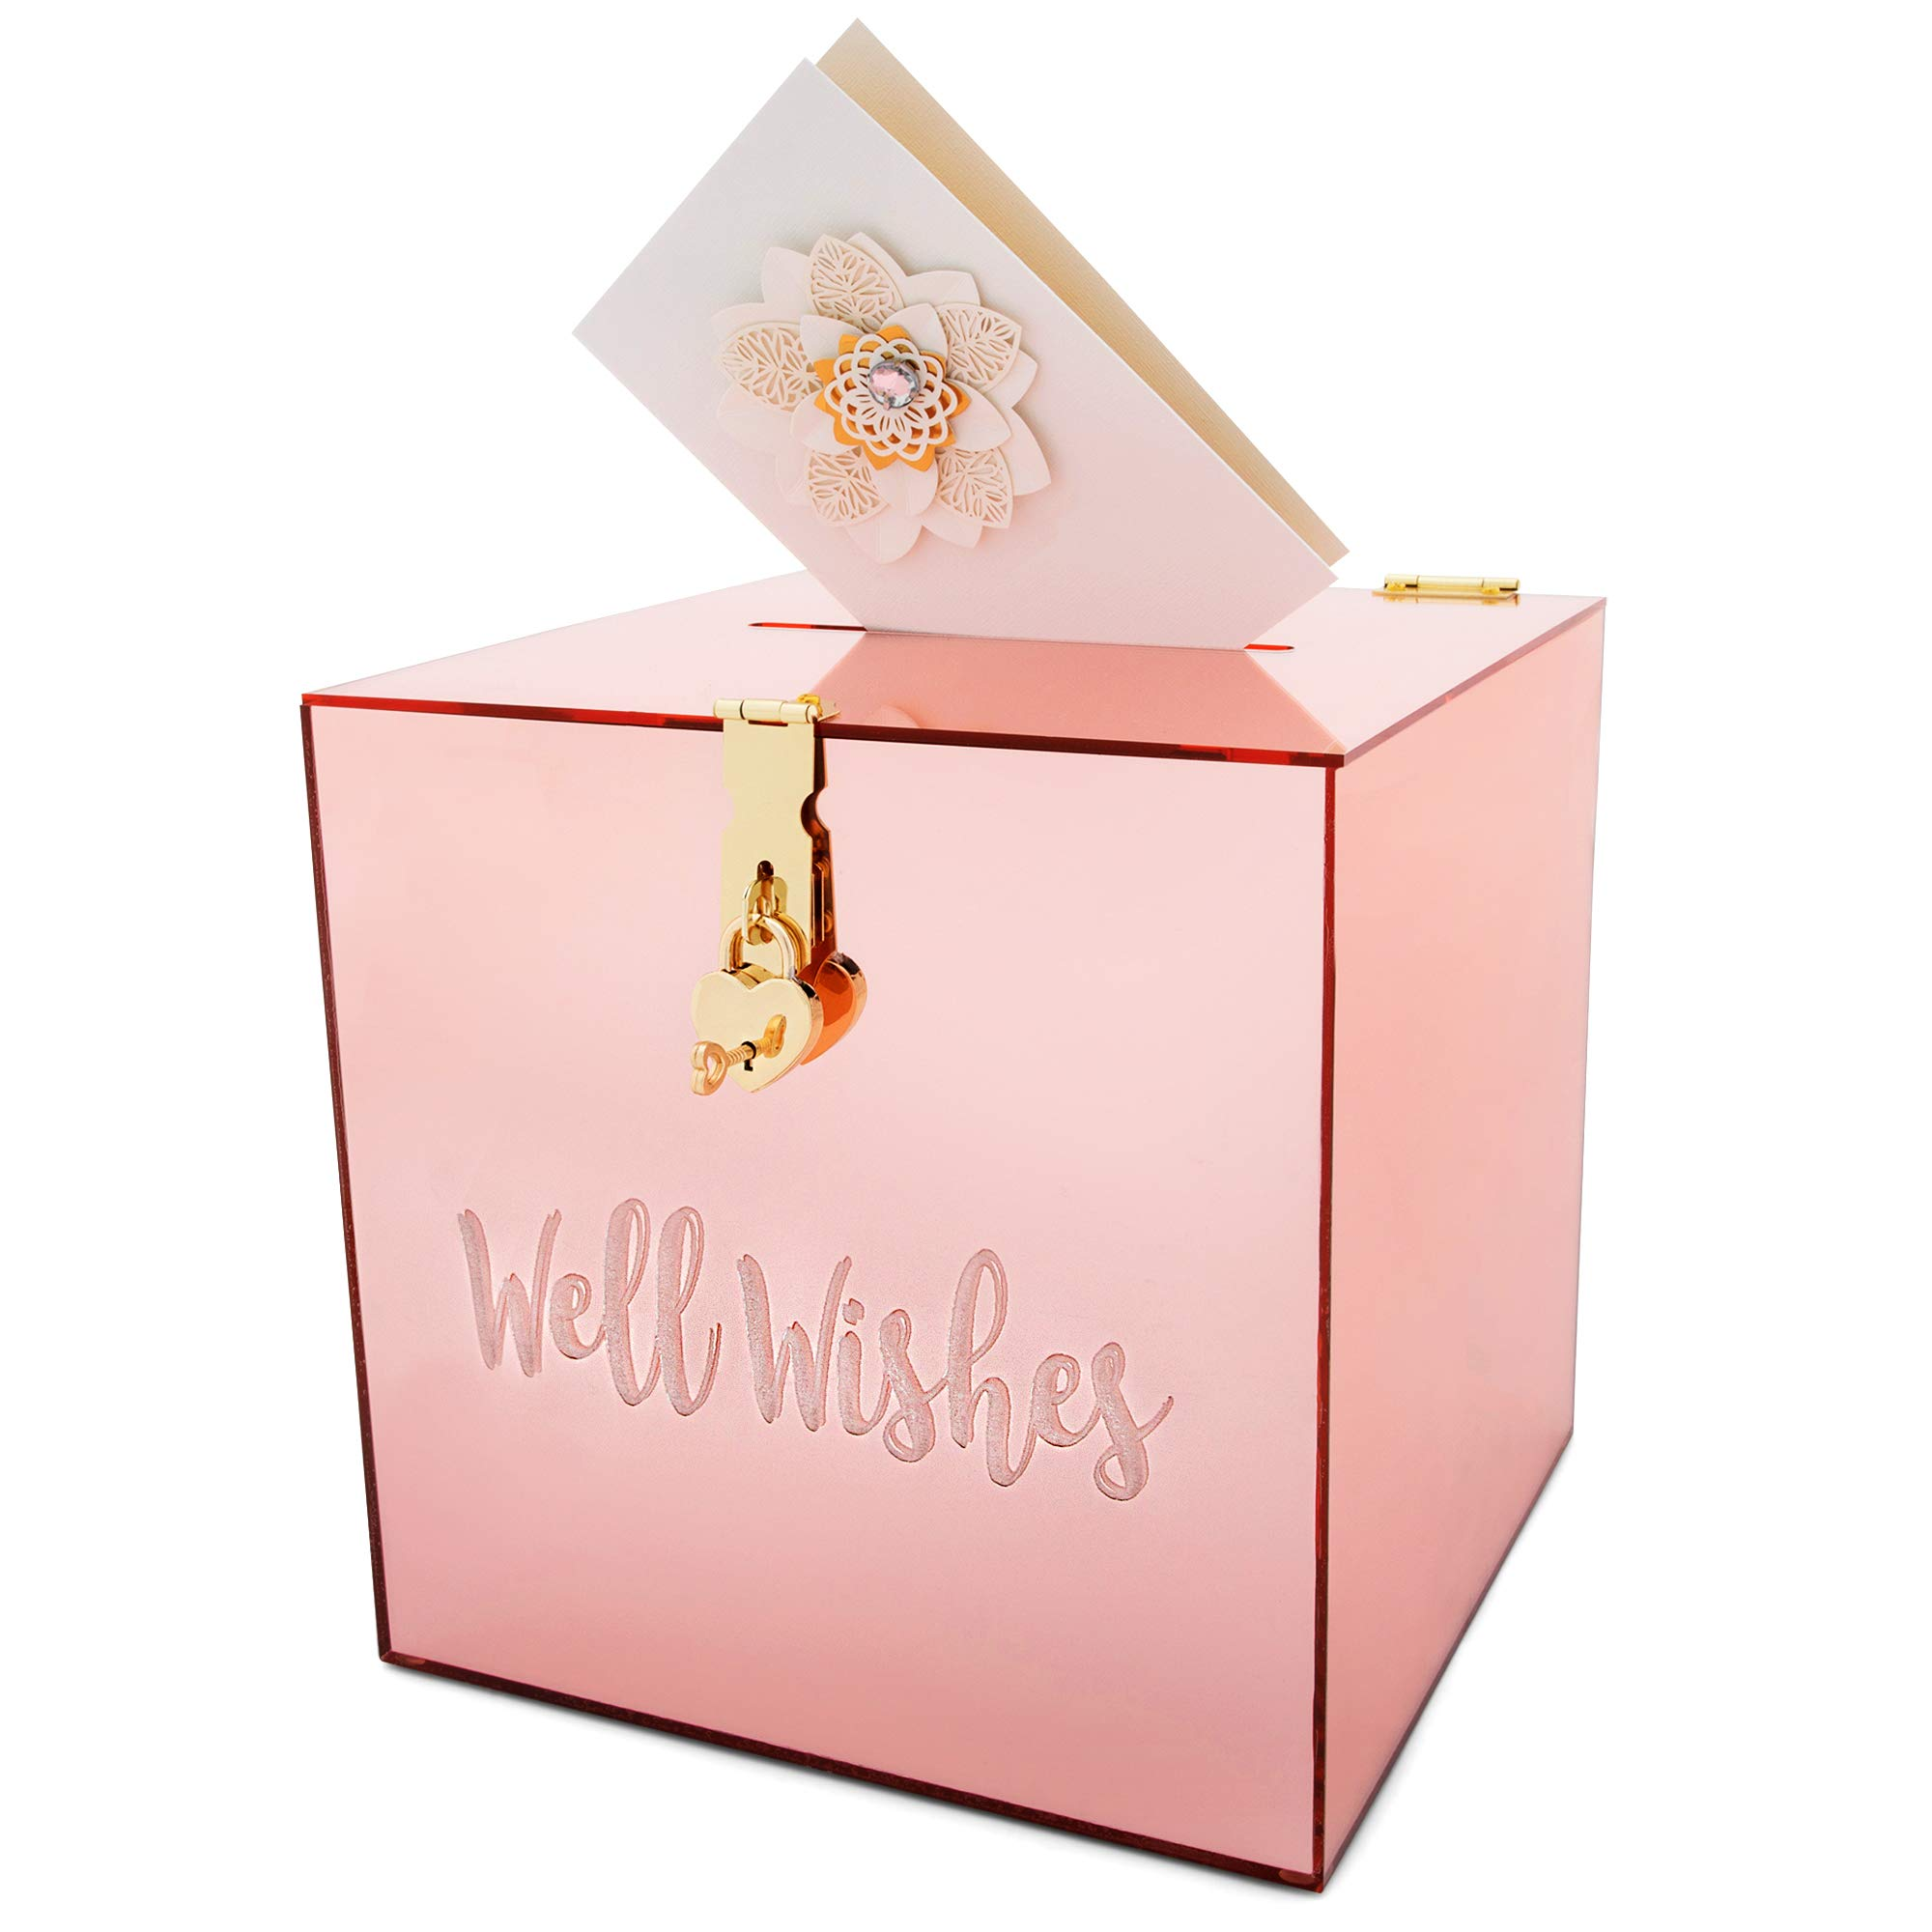 Belle & Ivory Gift Card Box with Rose Gold Mirror Finish for Anniversary, Birthday - Large, Acrylic Wedding Envelope Boxes for Reception, Engagement Party, Baby Shower - Elegant Wishing Well Card Box